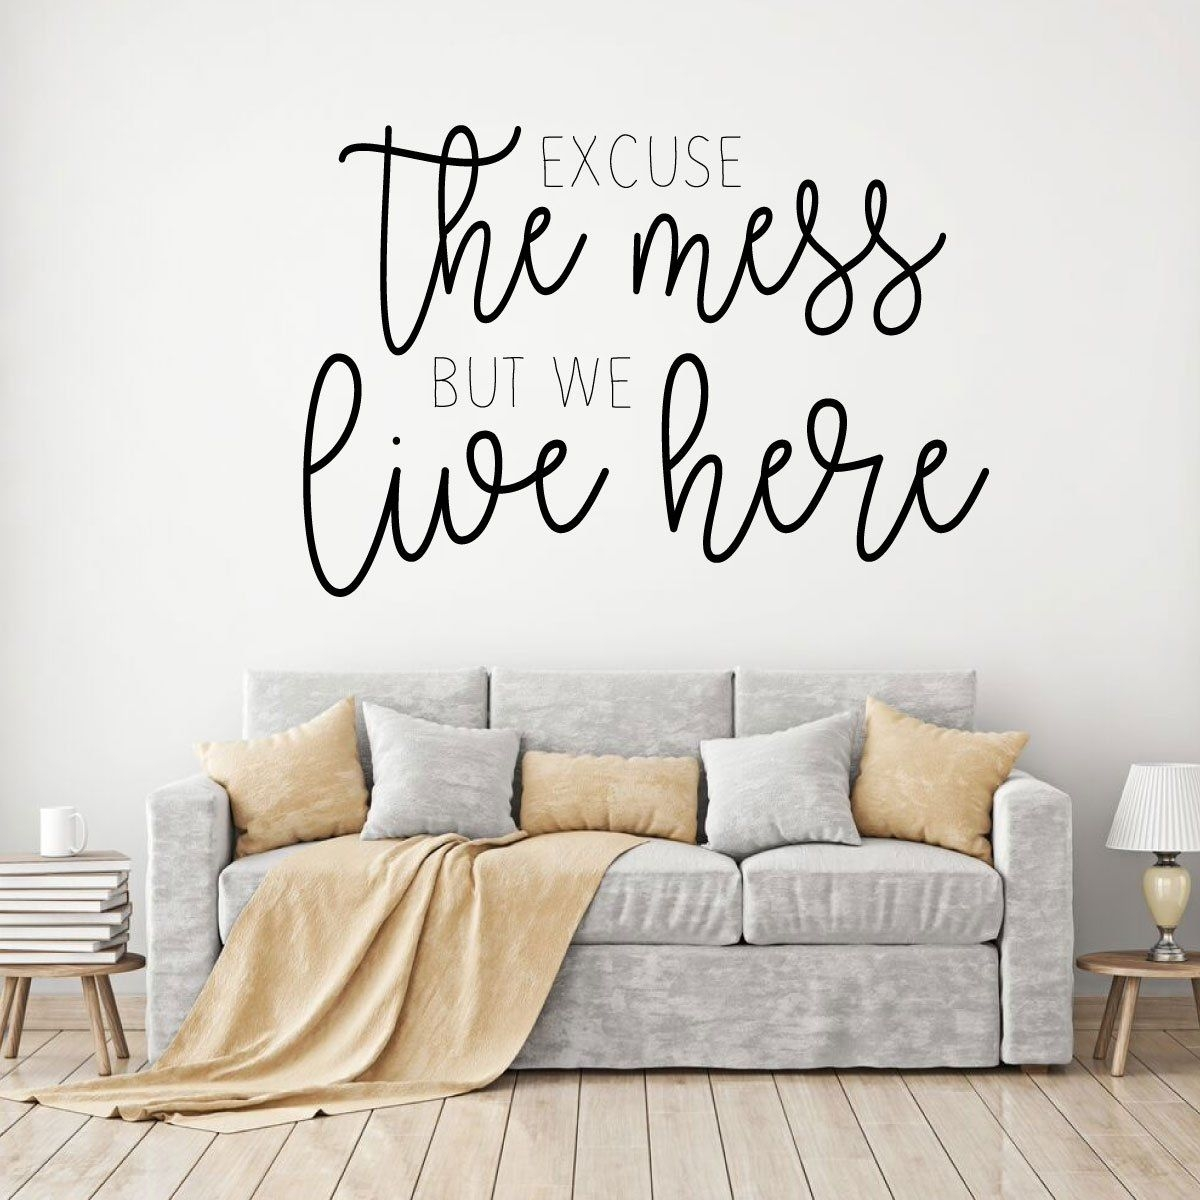 Excuse The Mess Quote For Living Room Vinyl Home Decor Wall Decal  Customvinyldecor